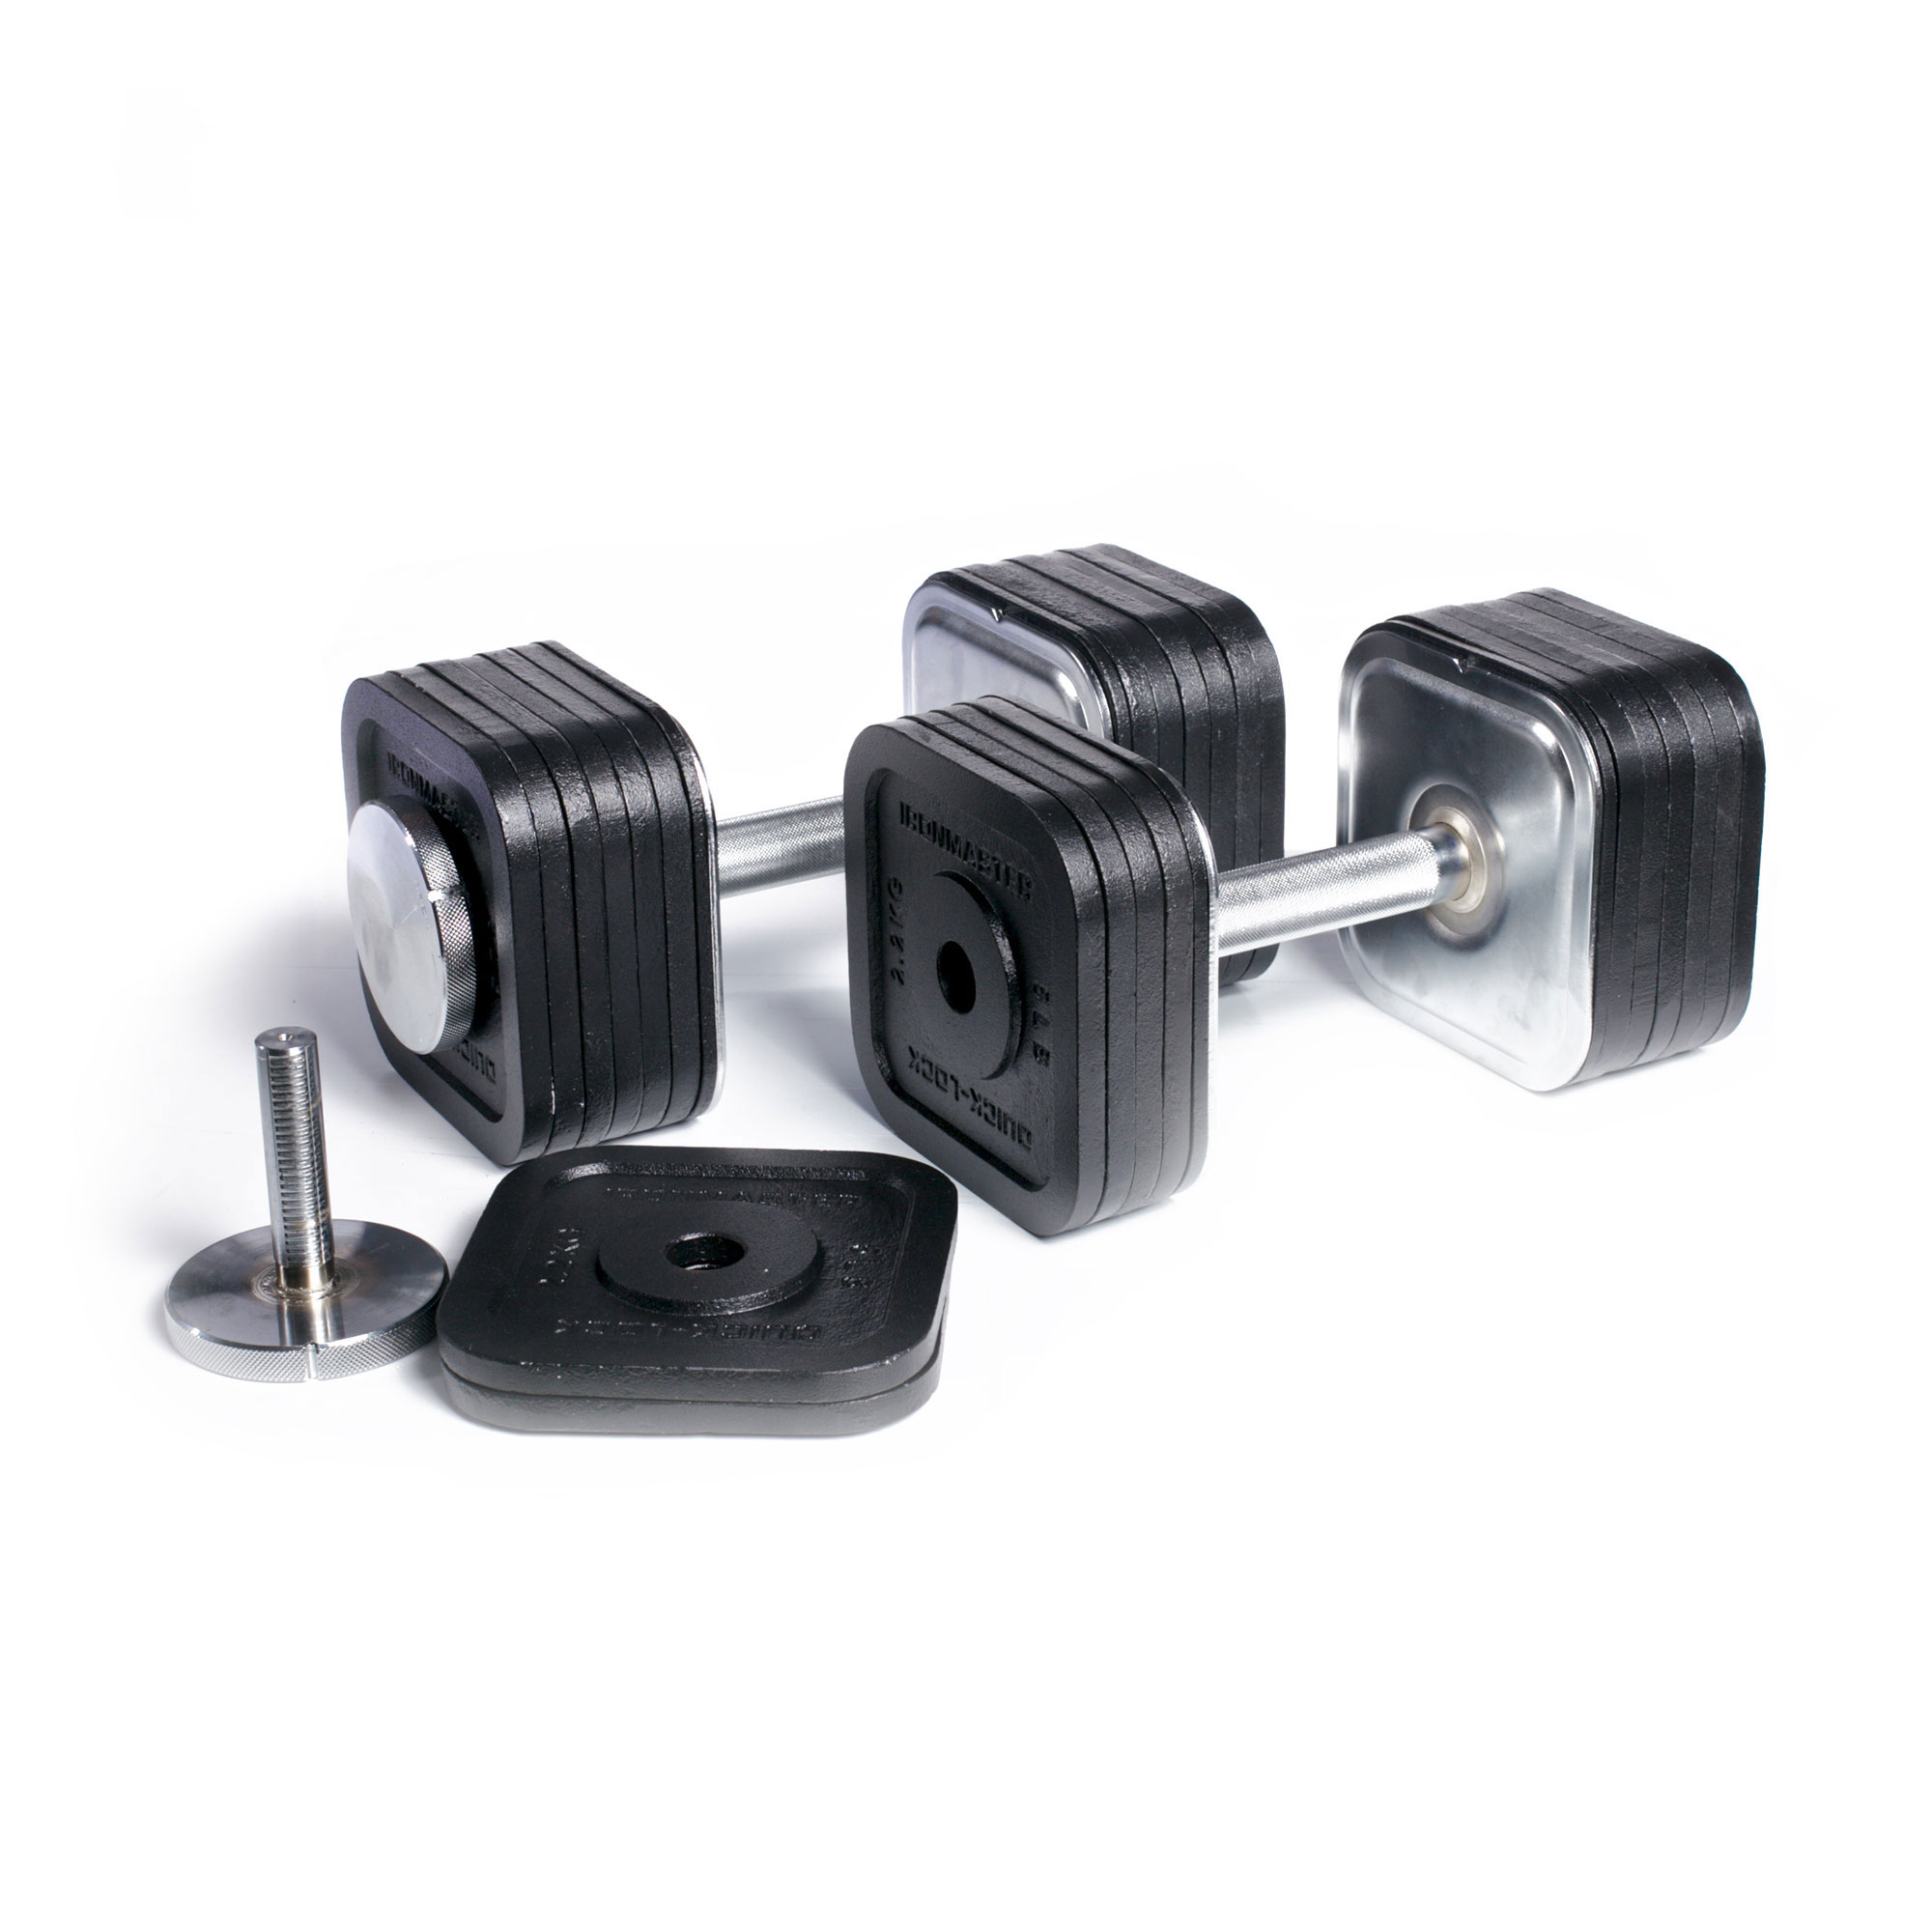 IronamsterUK Quick-Lock Dumbbells